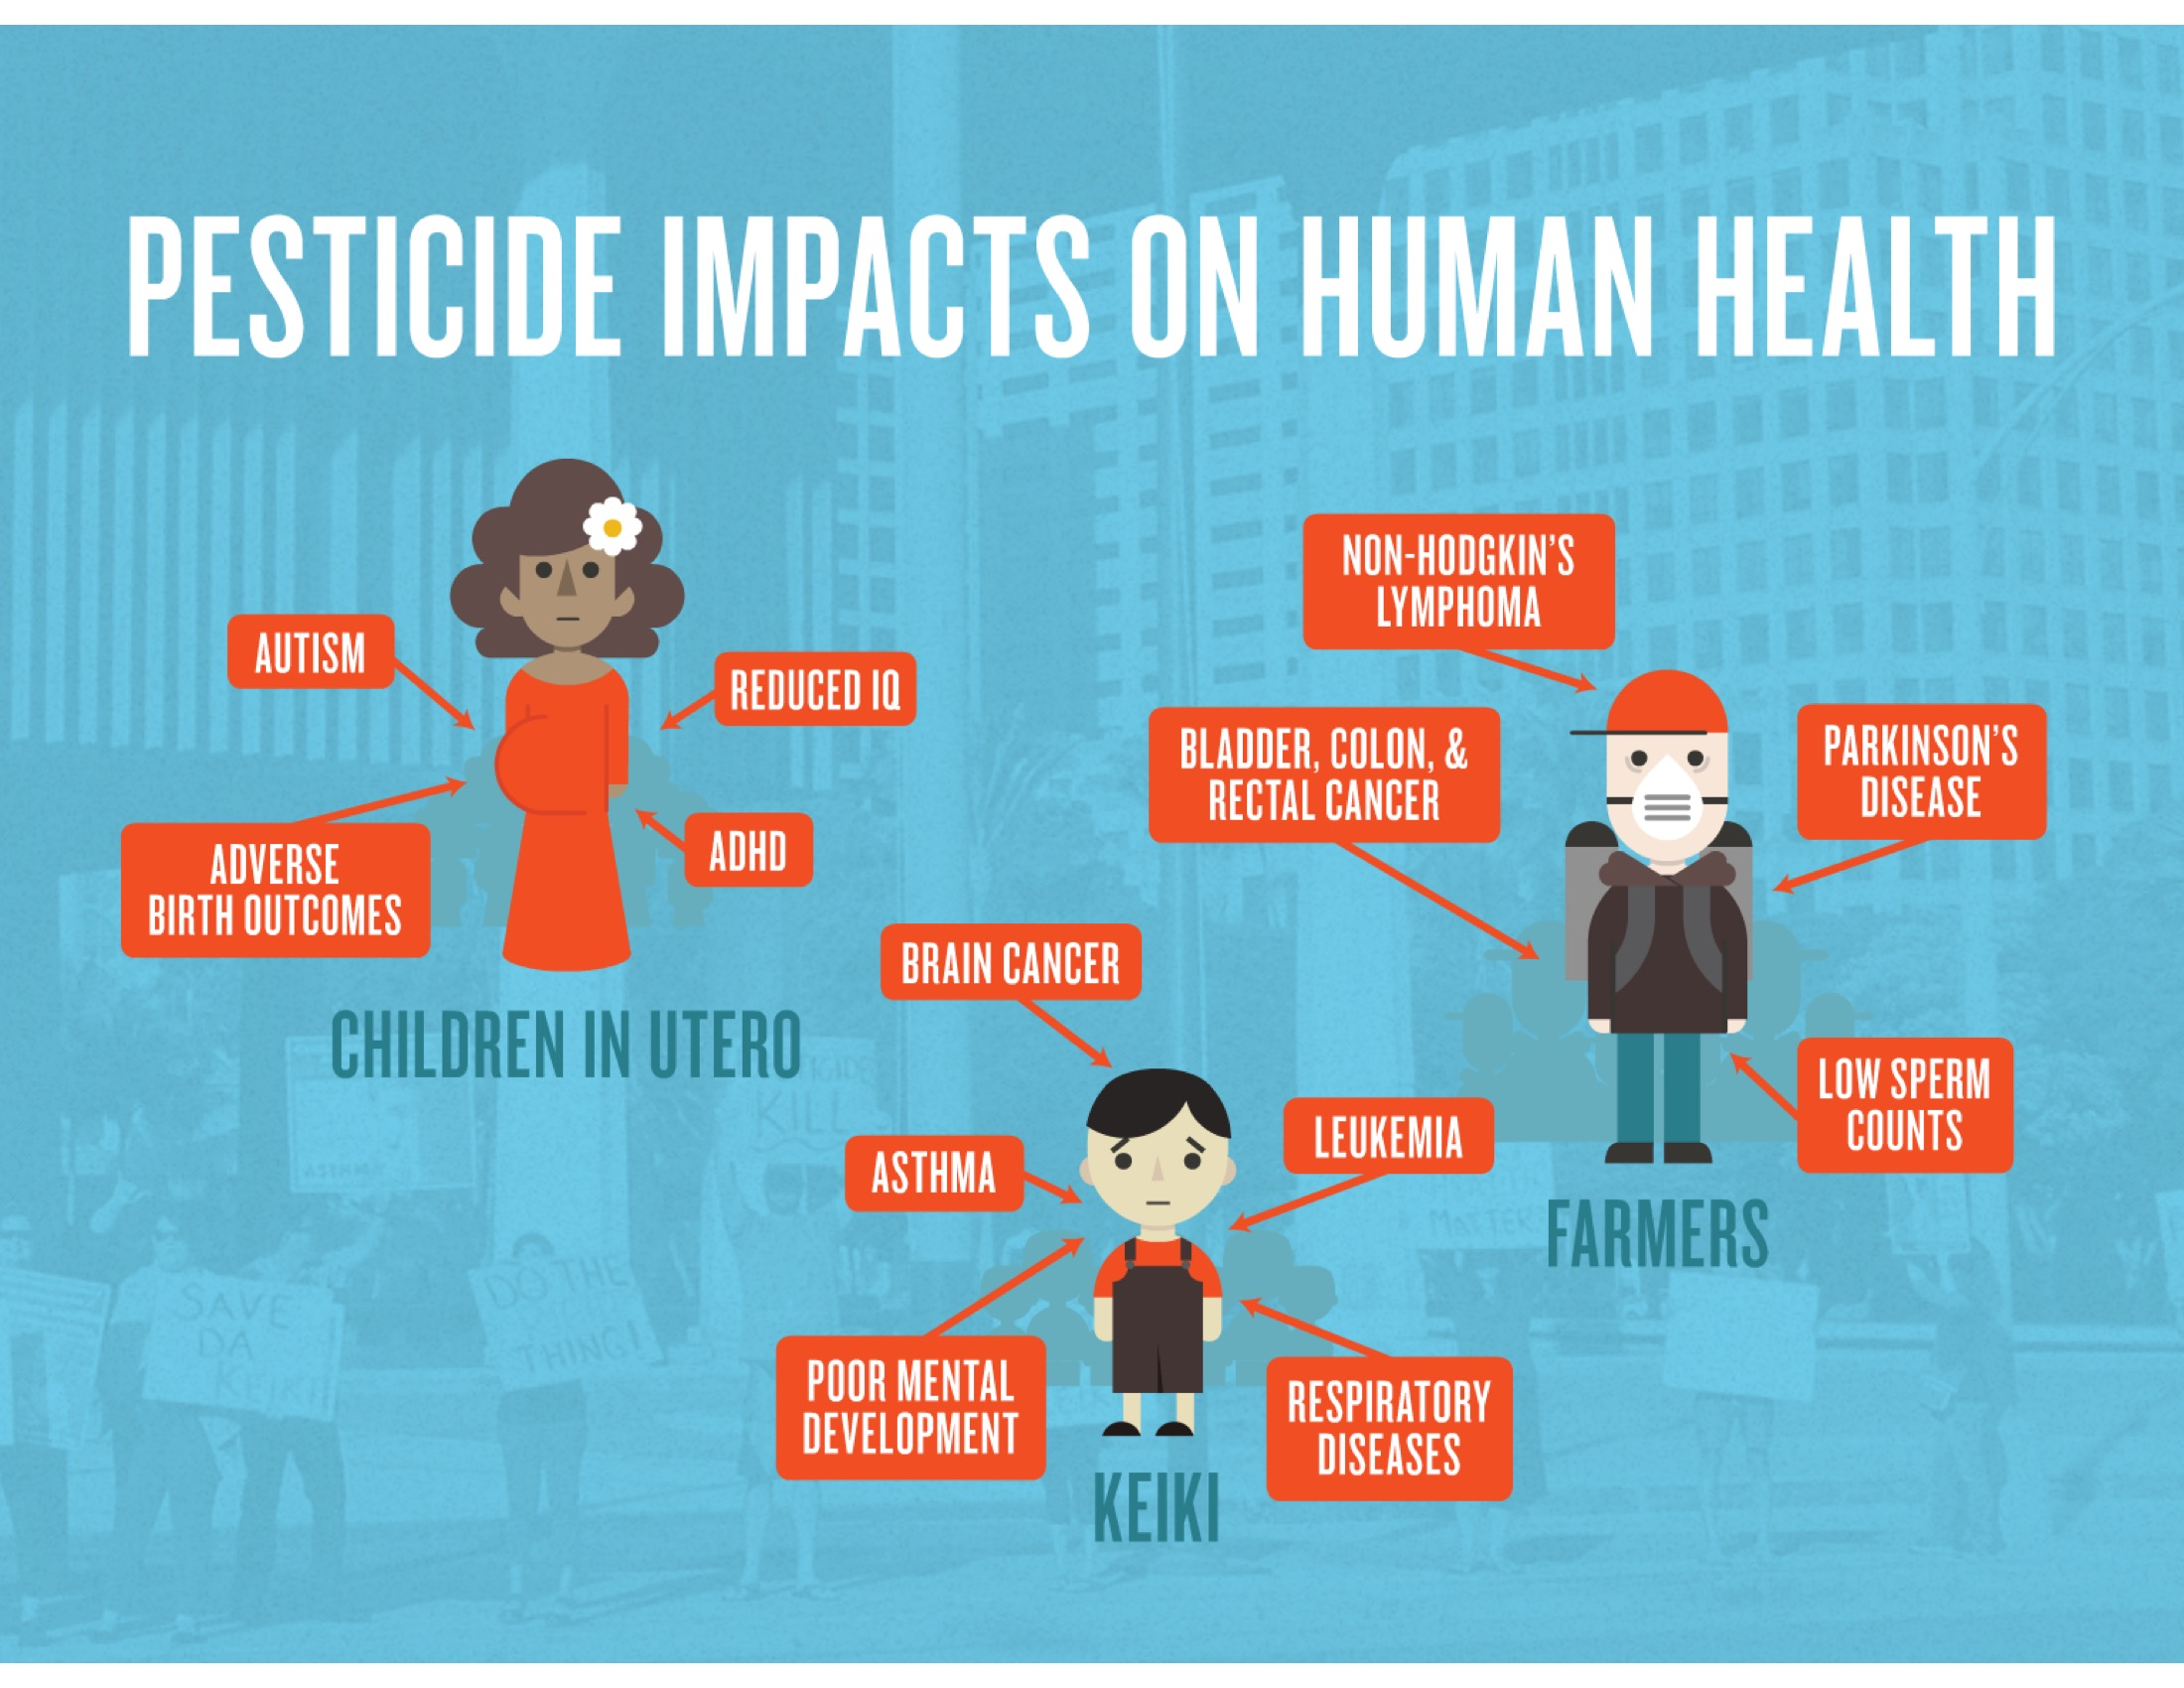 In general farmers, farmworkers, pregnant women, and children are at greatest risk: farmers are more highly exposed than the general population; and children are more susceptible to the harmful effects of pesticides than adults.